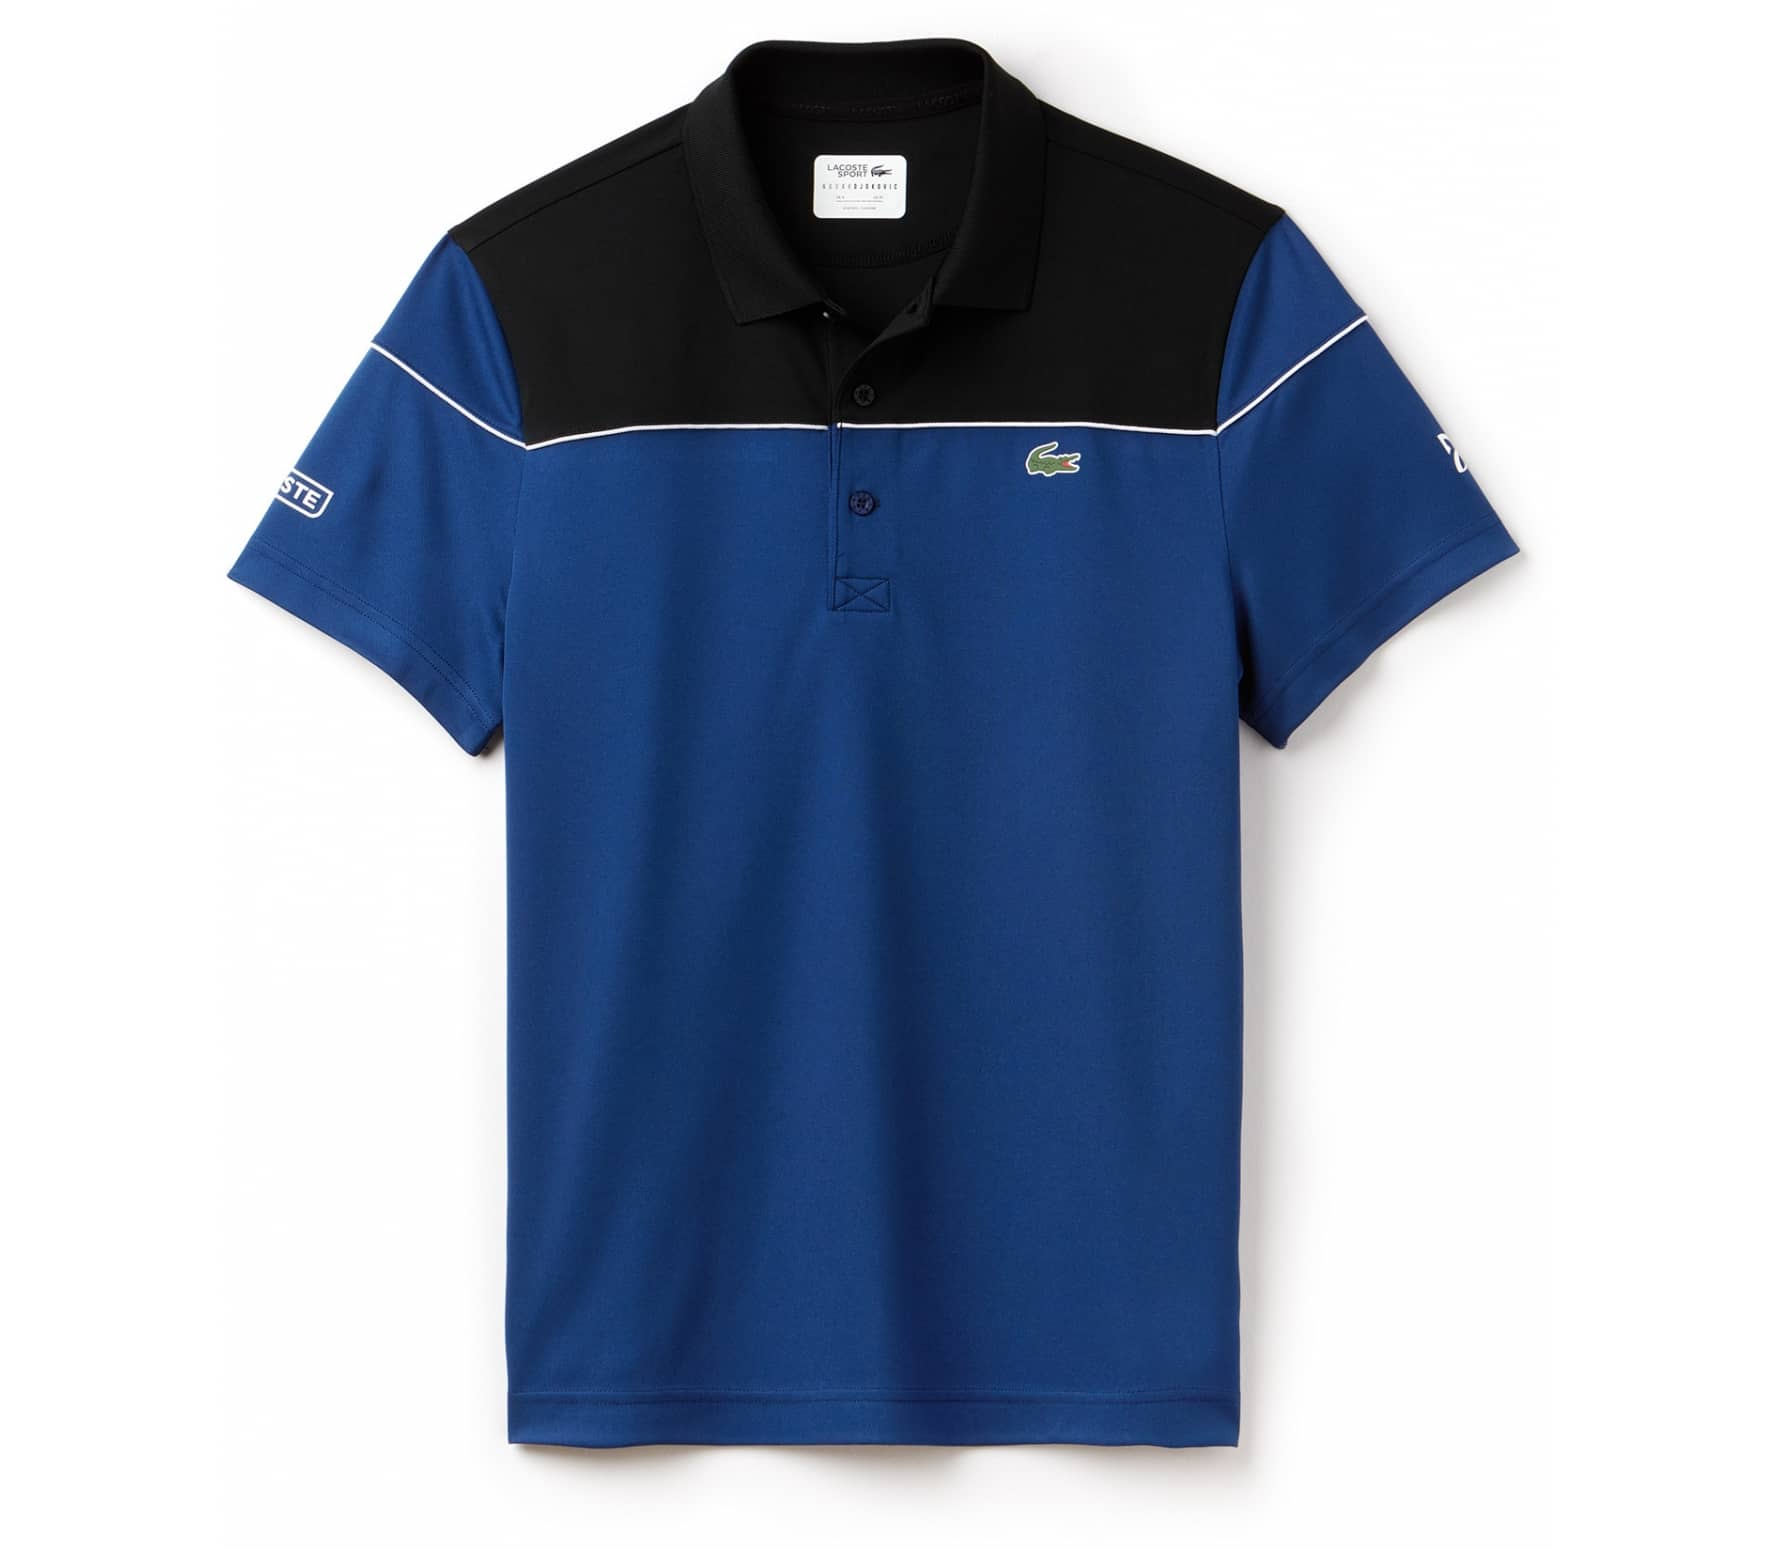 97d52824c9 Lacoste - Court Sleeved Ribbed Collar Hommes Tennis Polo (bleu/noir ...